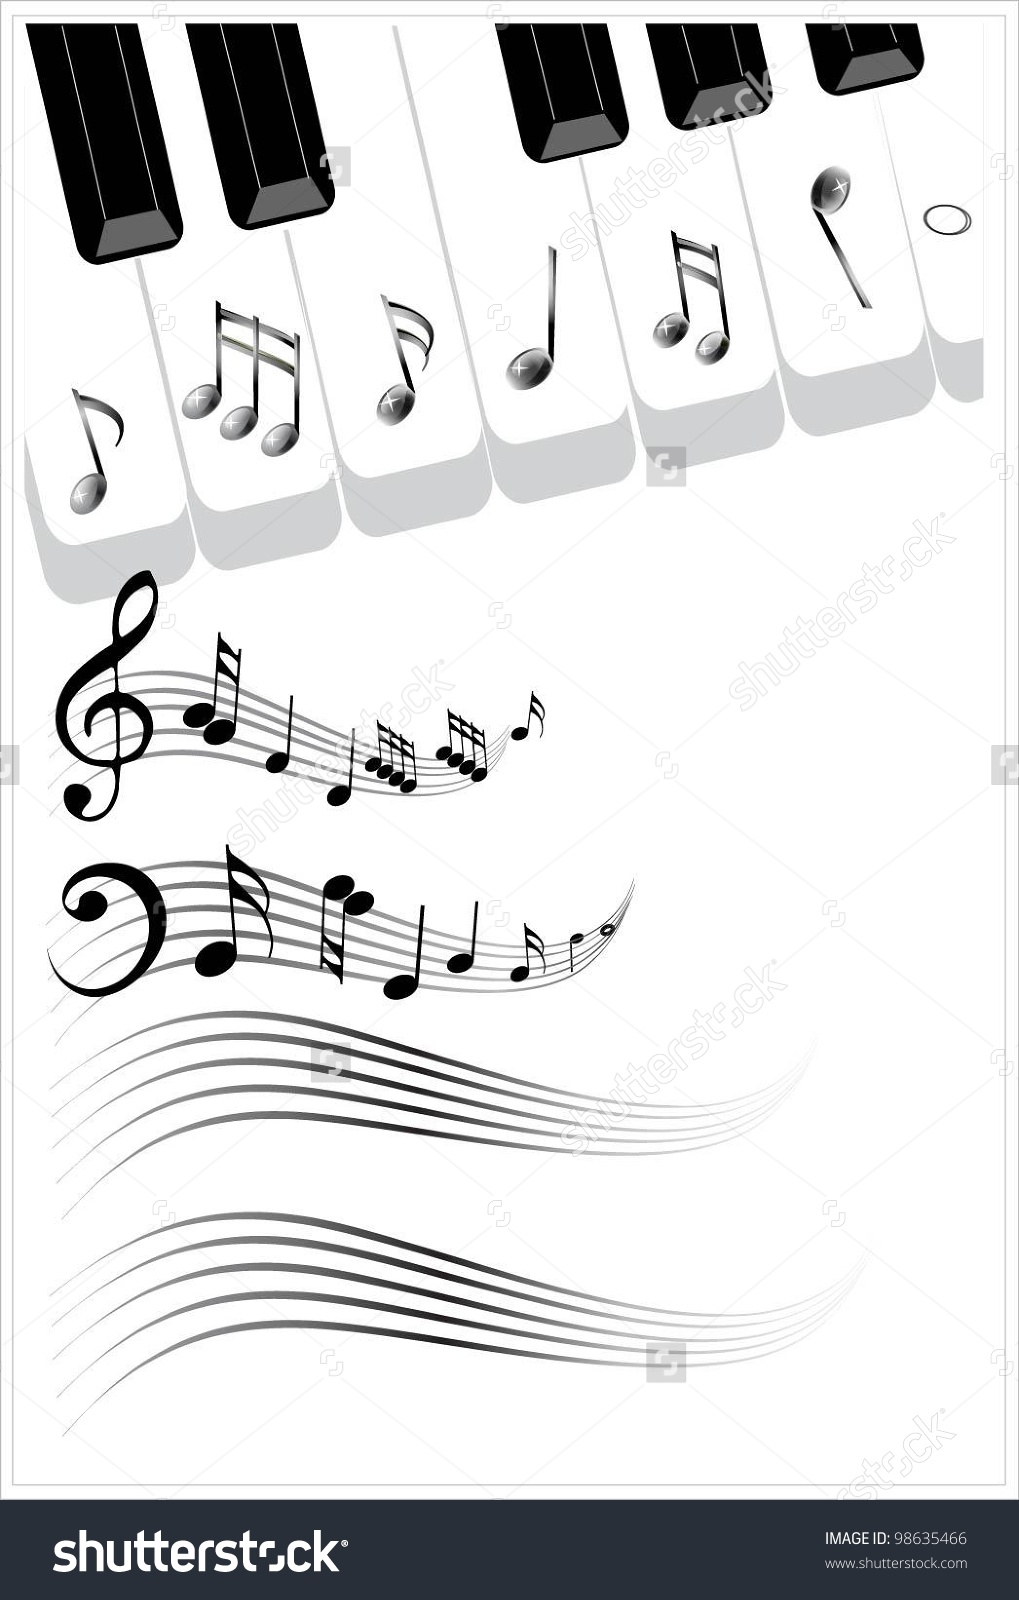 Clip Art Illustration Music Background Piano Stock Vector 98635466.